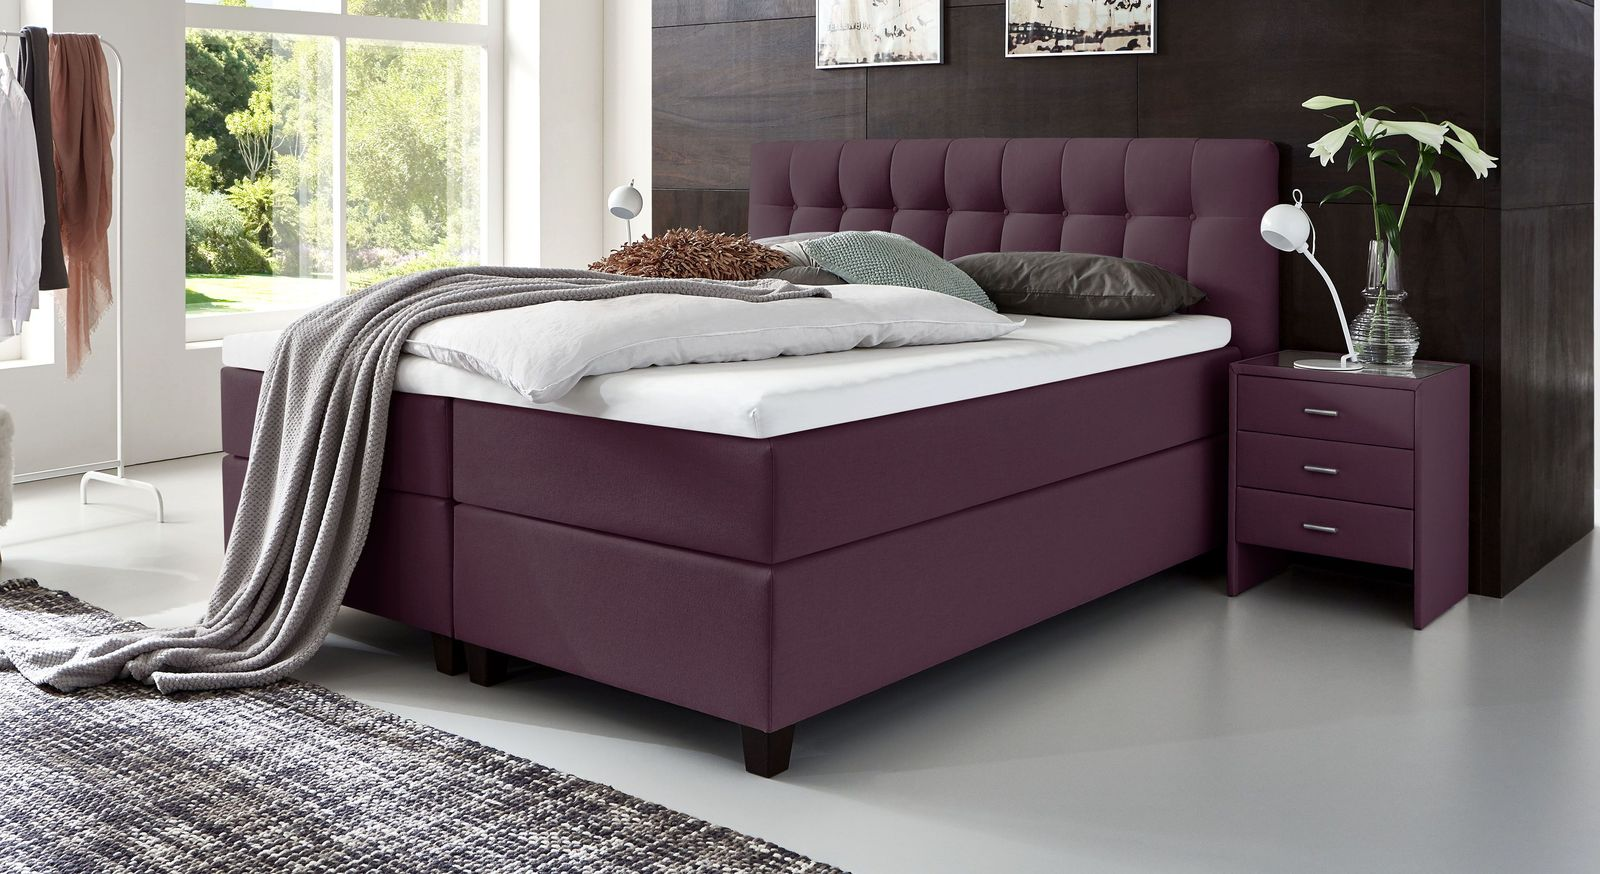 66 cm hohes Boxspringbett Luciano aus Webstoff in Beere